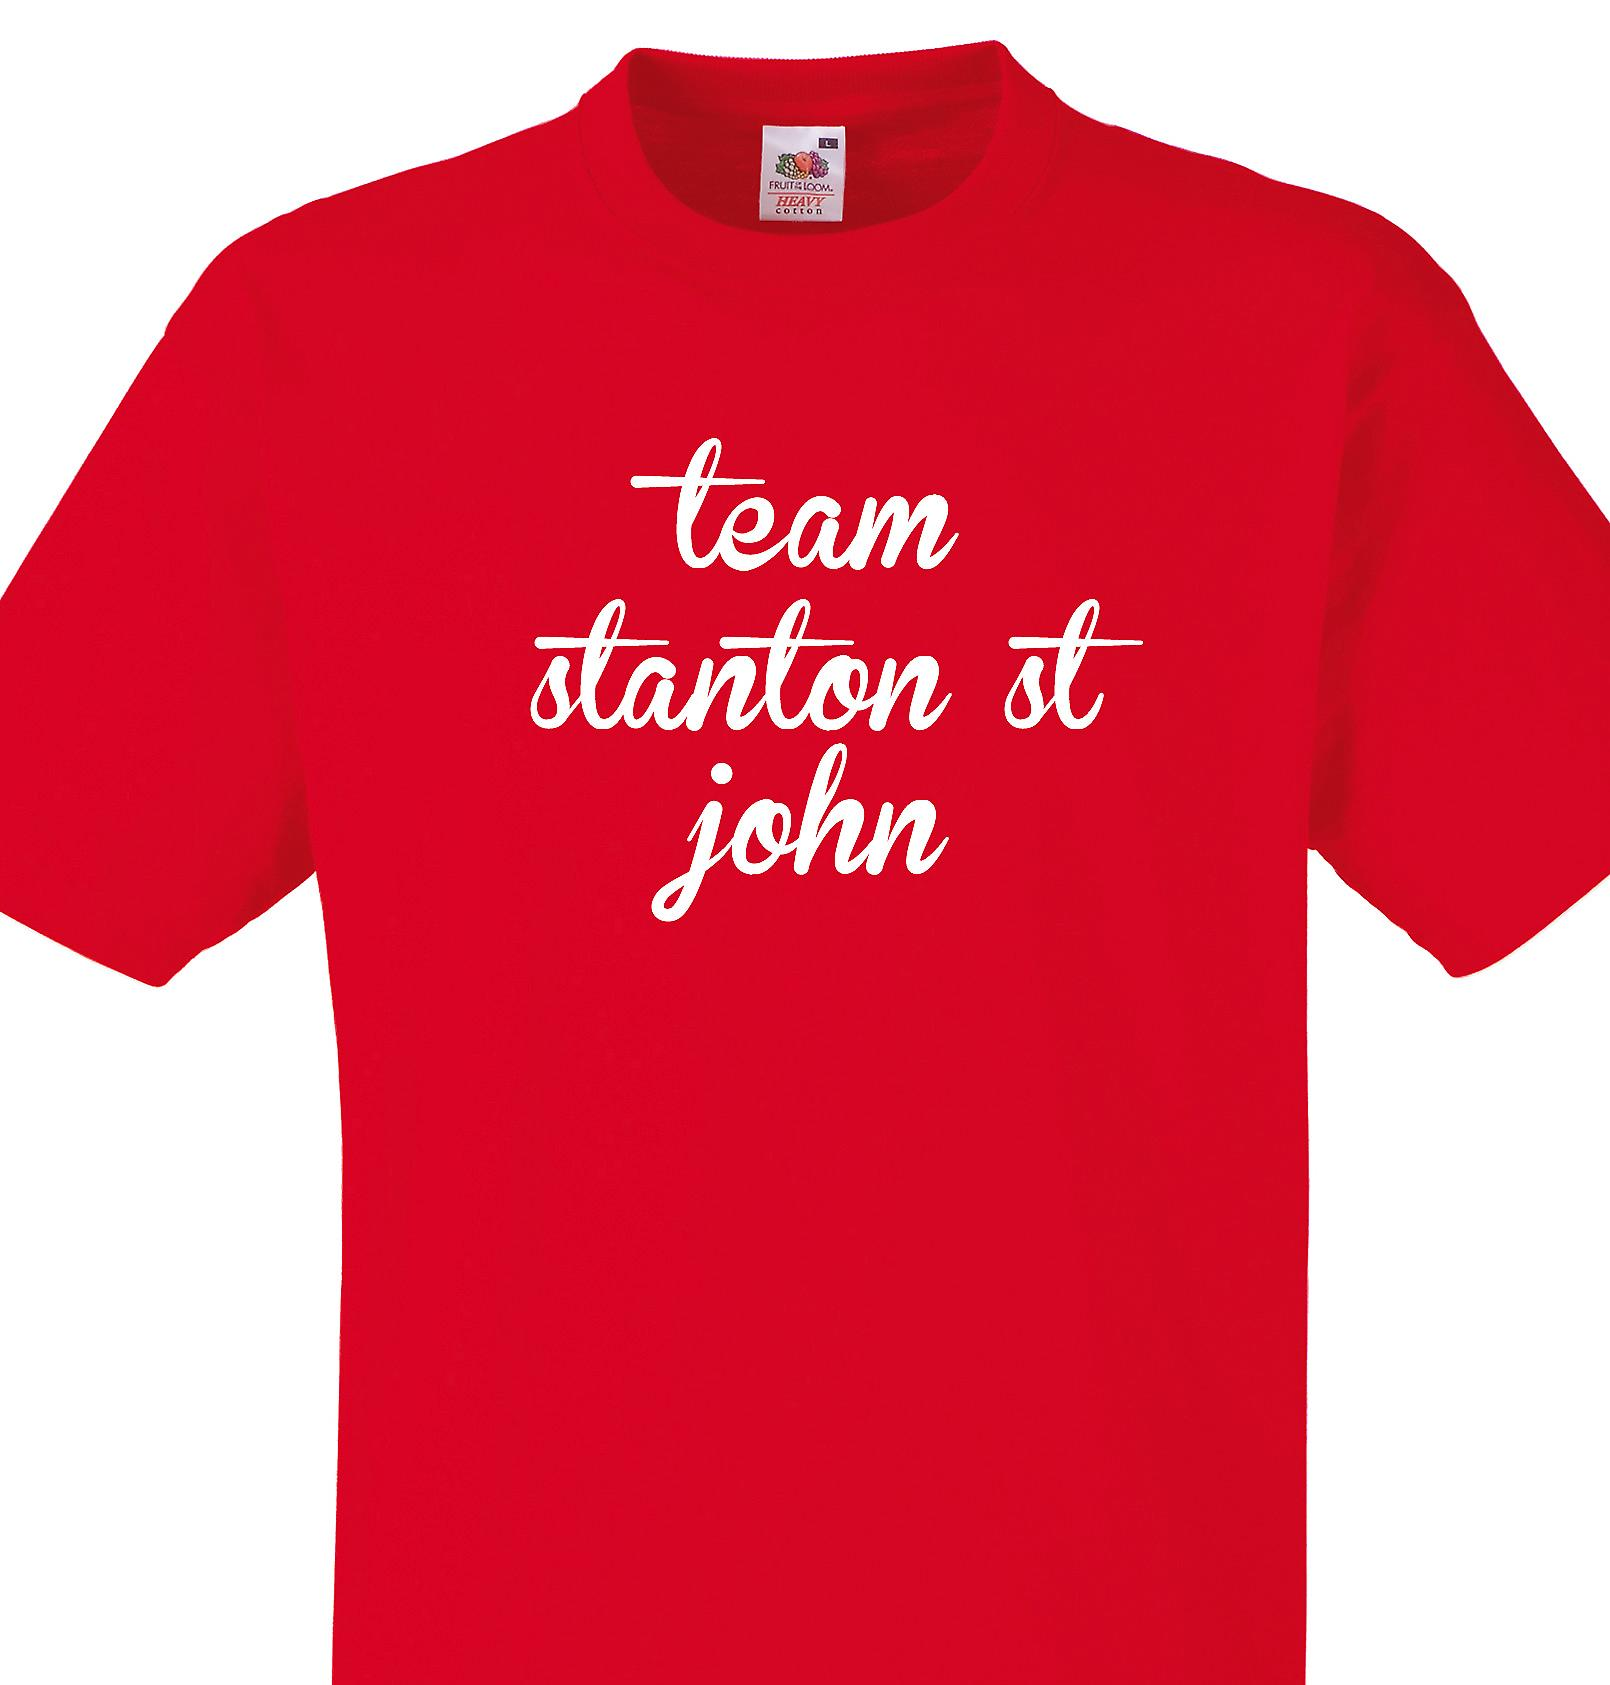 Team Stanton st john Red T shirt